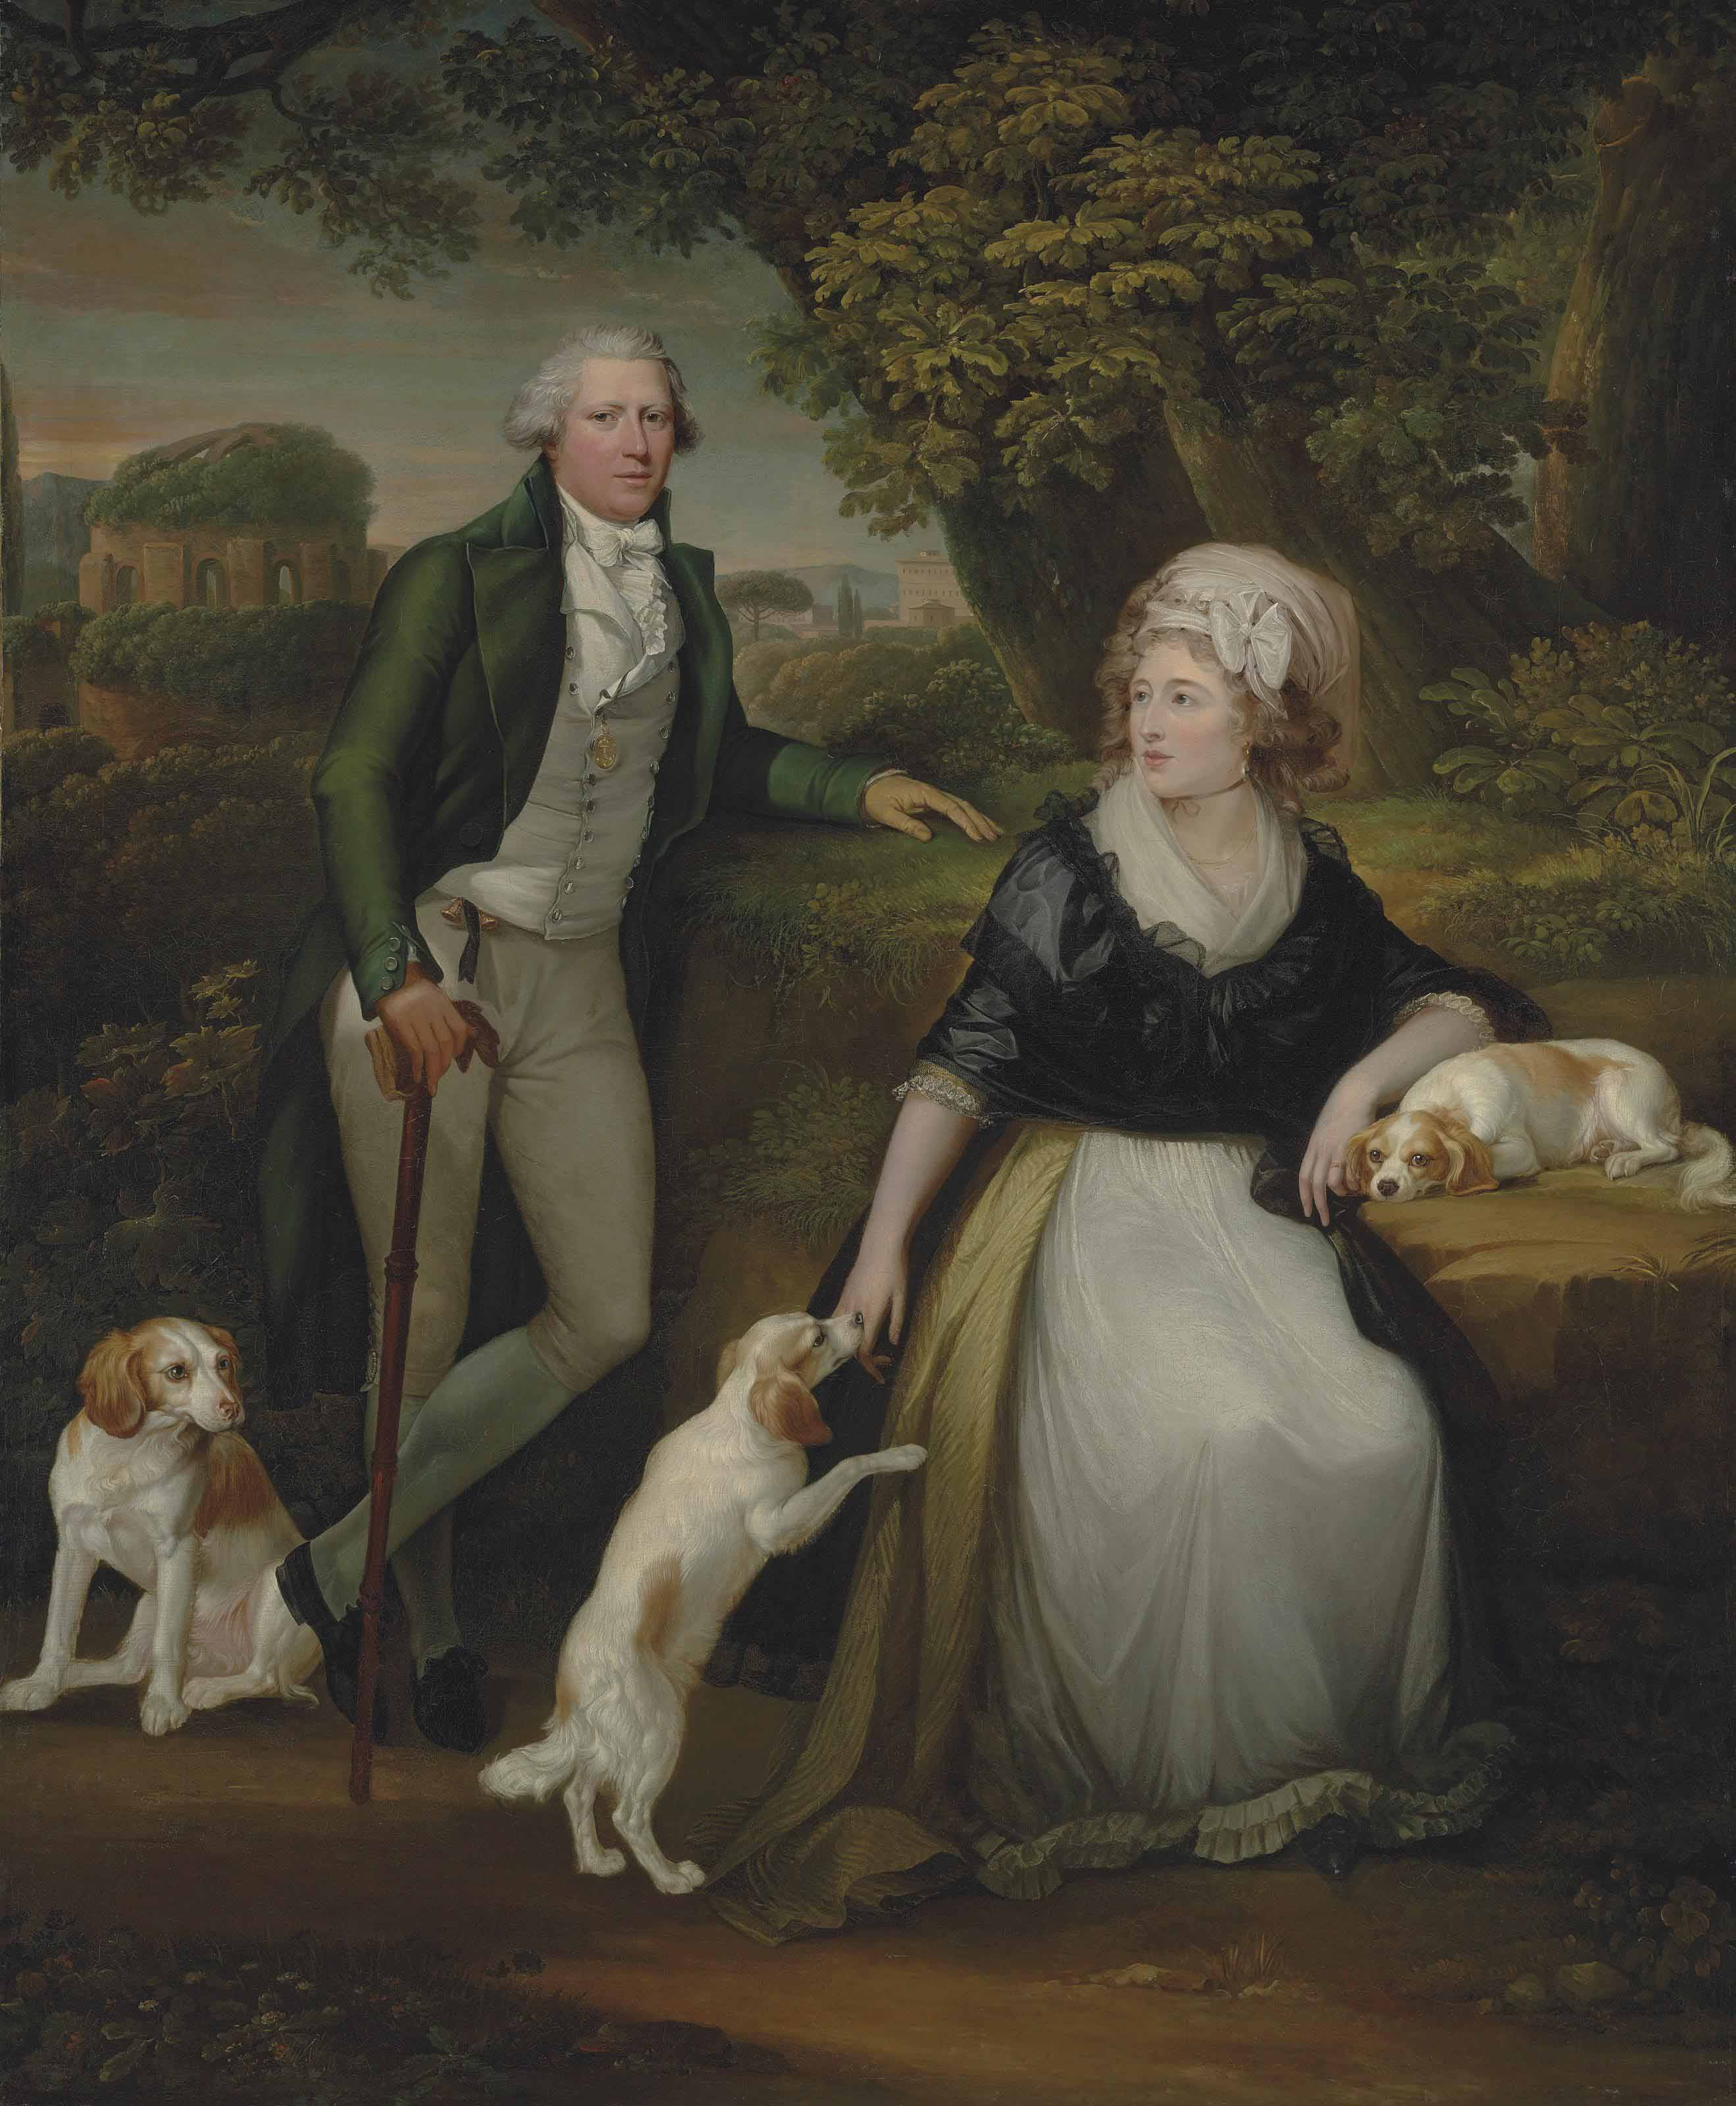 Double portrait of Sir Andrew Corbet Corbet, Bt., of Stoke on Trent (1752-1823), and his wife Hestor, full-length, with their spaniels 'Bow', 'Gig' and 'Monkey', with a view of the Temple of Minerva Medica, Rome, beyond